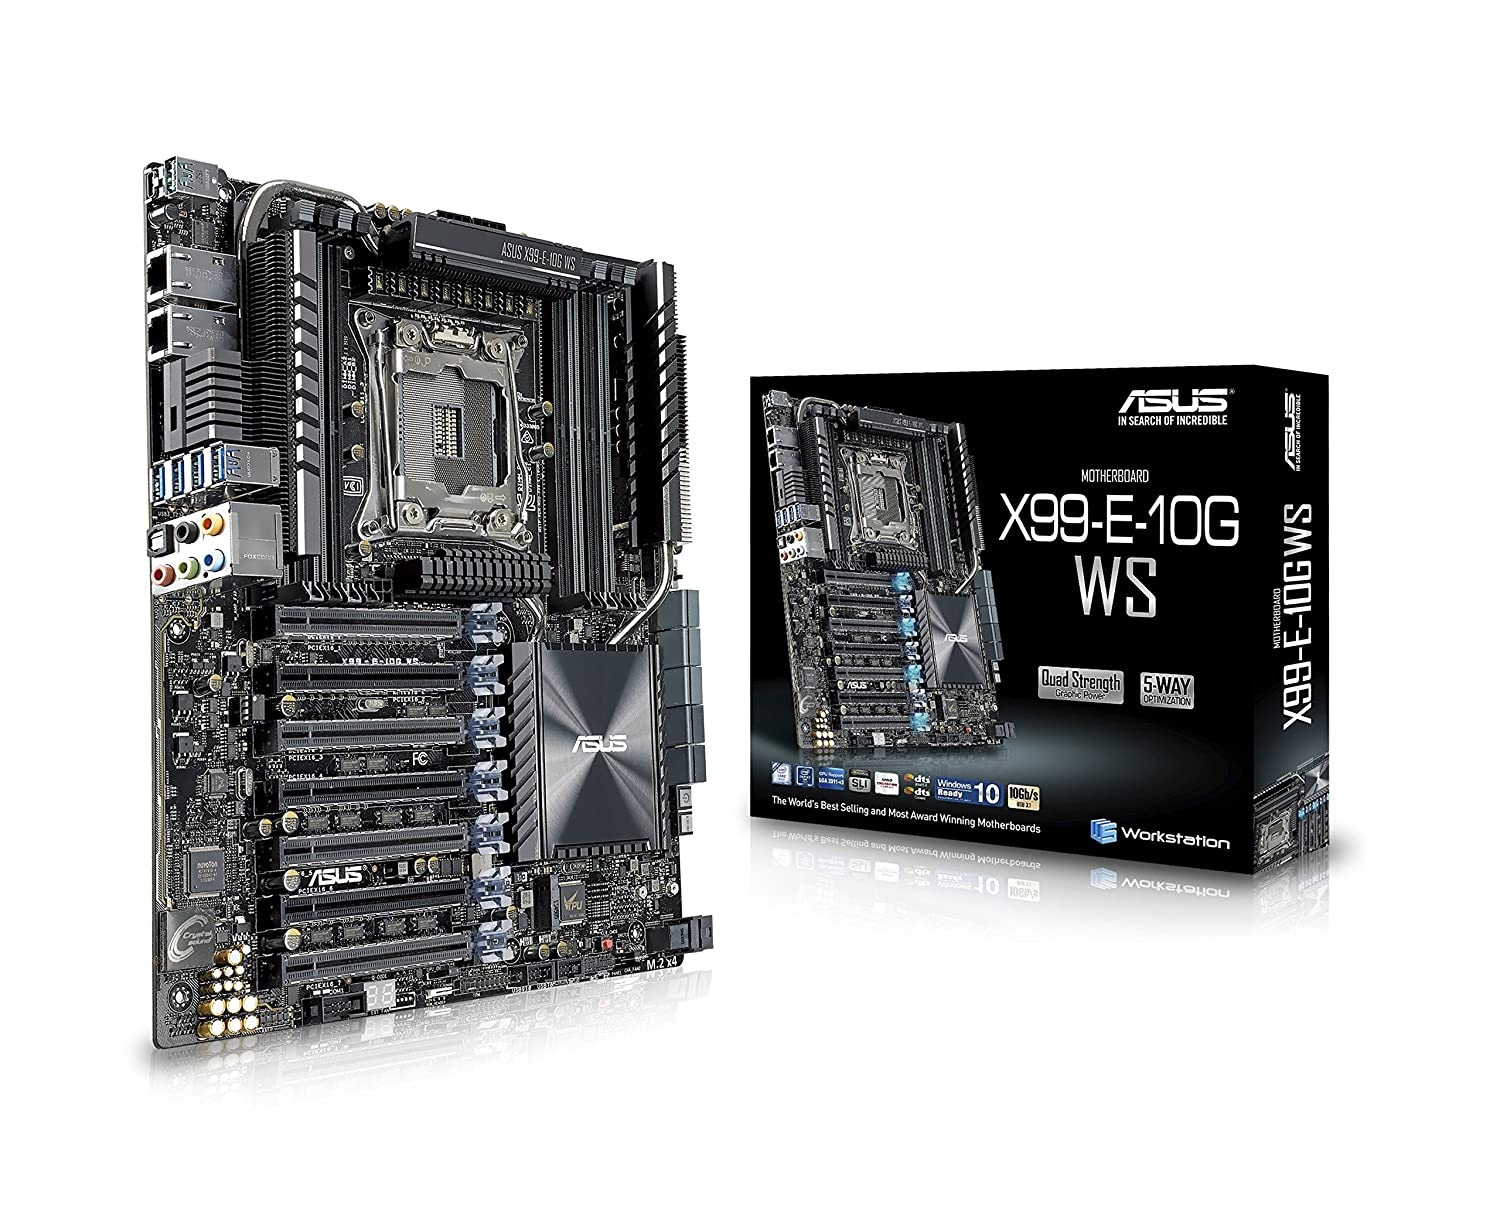 NEW DRIVERS: ASUS X99-E-10G WS MOTHERBOARD